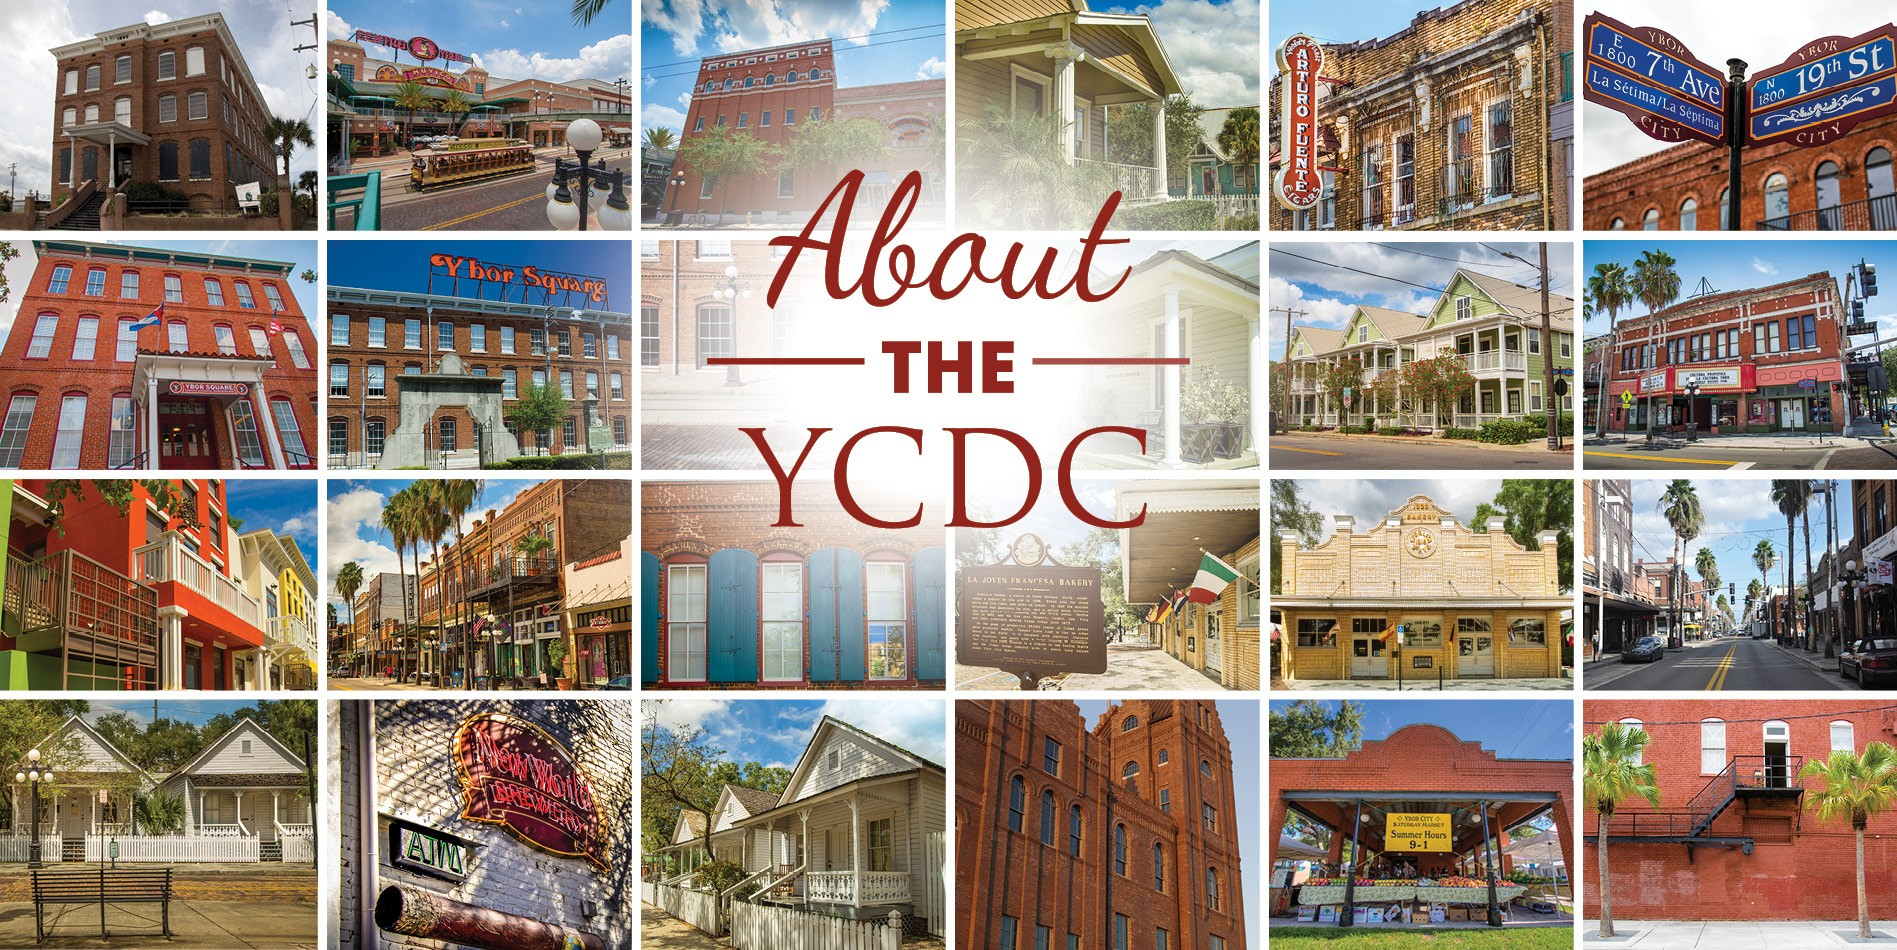 Collage of photos containing buildings of ybor city.